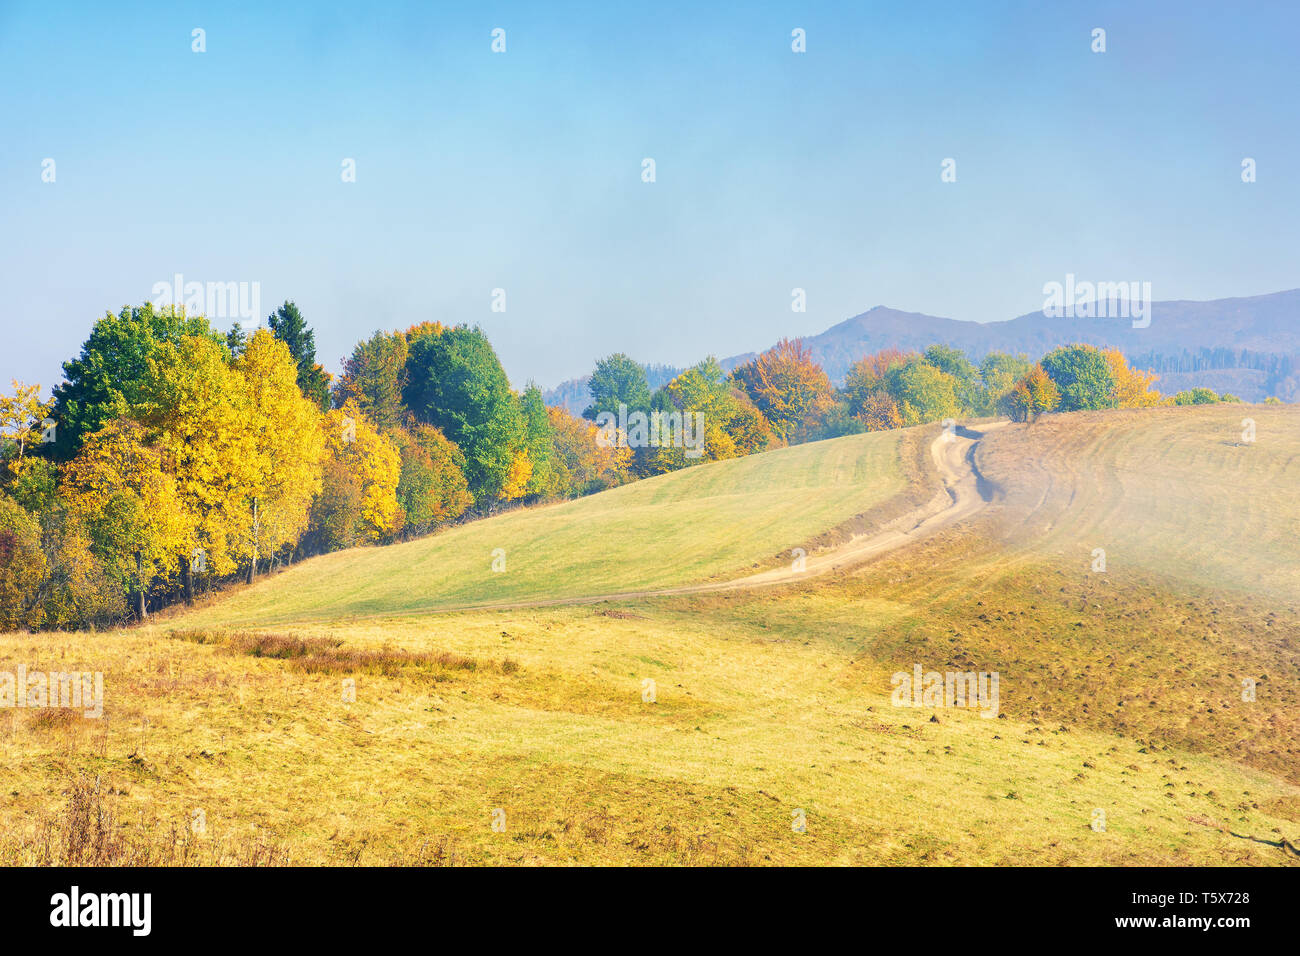 early autumn countryside scenery in foggy weather. row of trees in colorful foliage on the hill along the road. wonderful bright morning background in - Stock Image